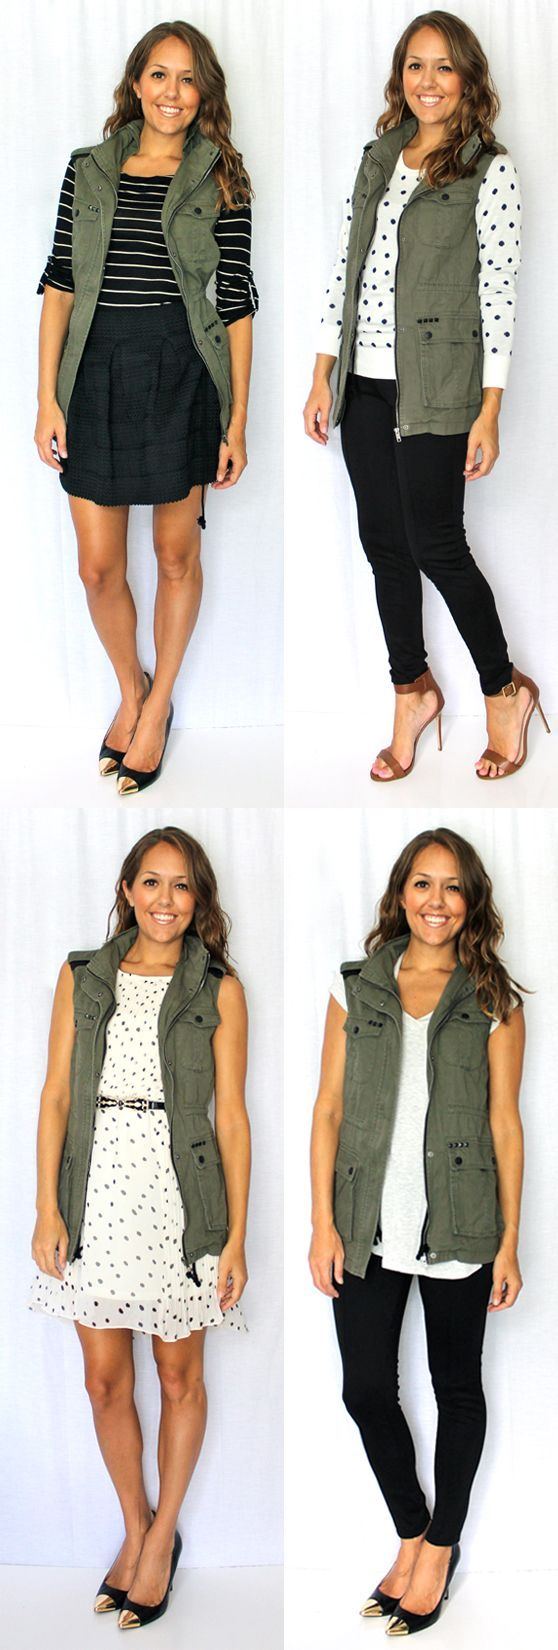 13 Must have for fall: Army Vest from J